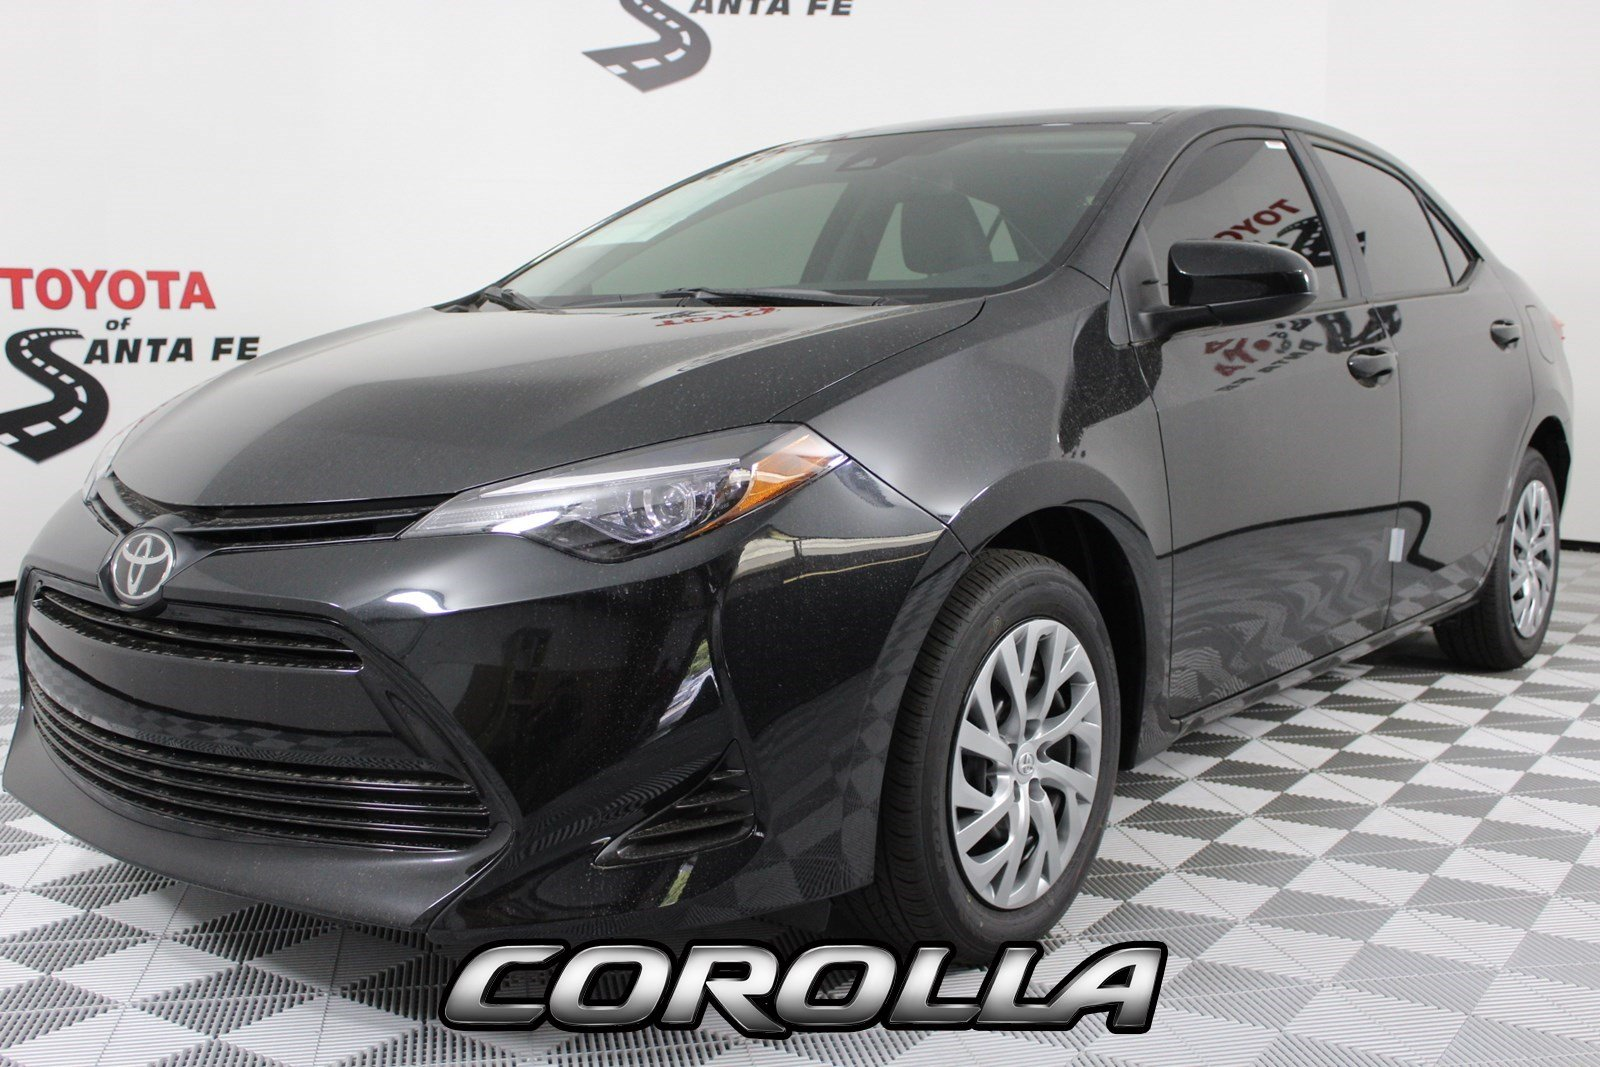 New 2019 Toyota Corolla Le In Santa Fe Kc176438 Toyota Of Santa Fe